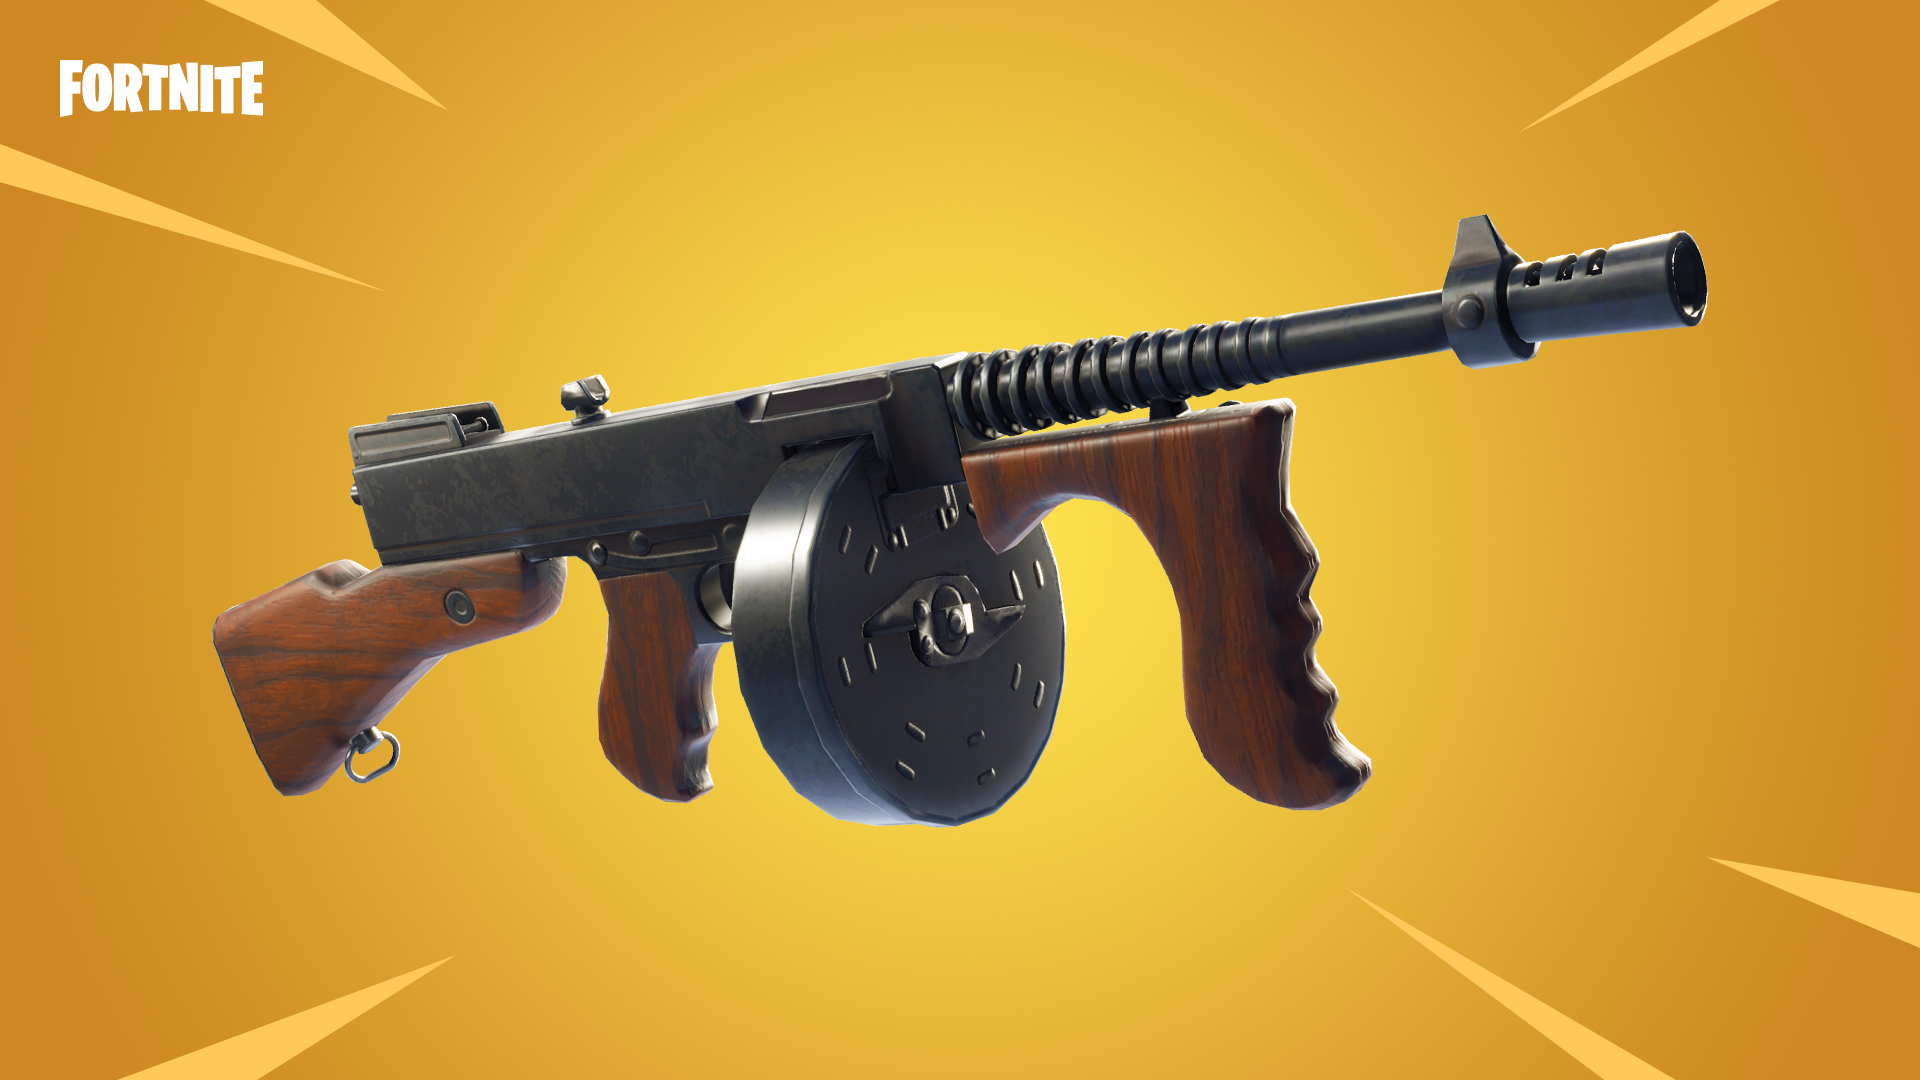 Fortnite's v4 5 Update Adds New Drum Gun, New Items for Save